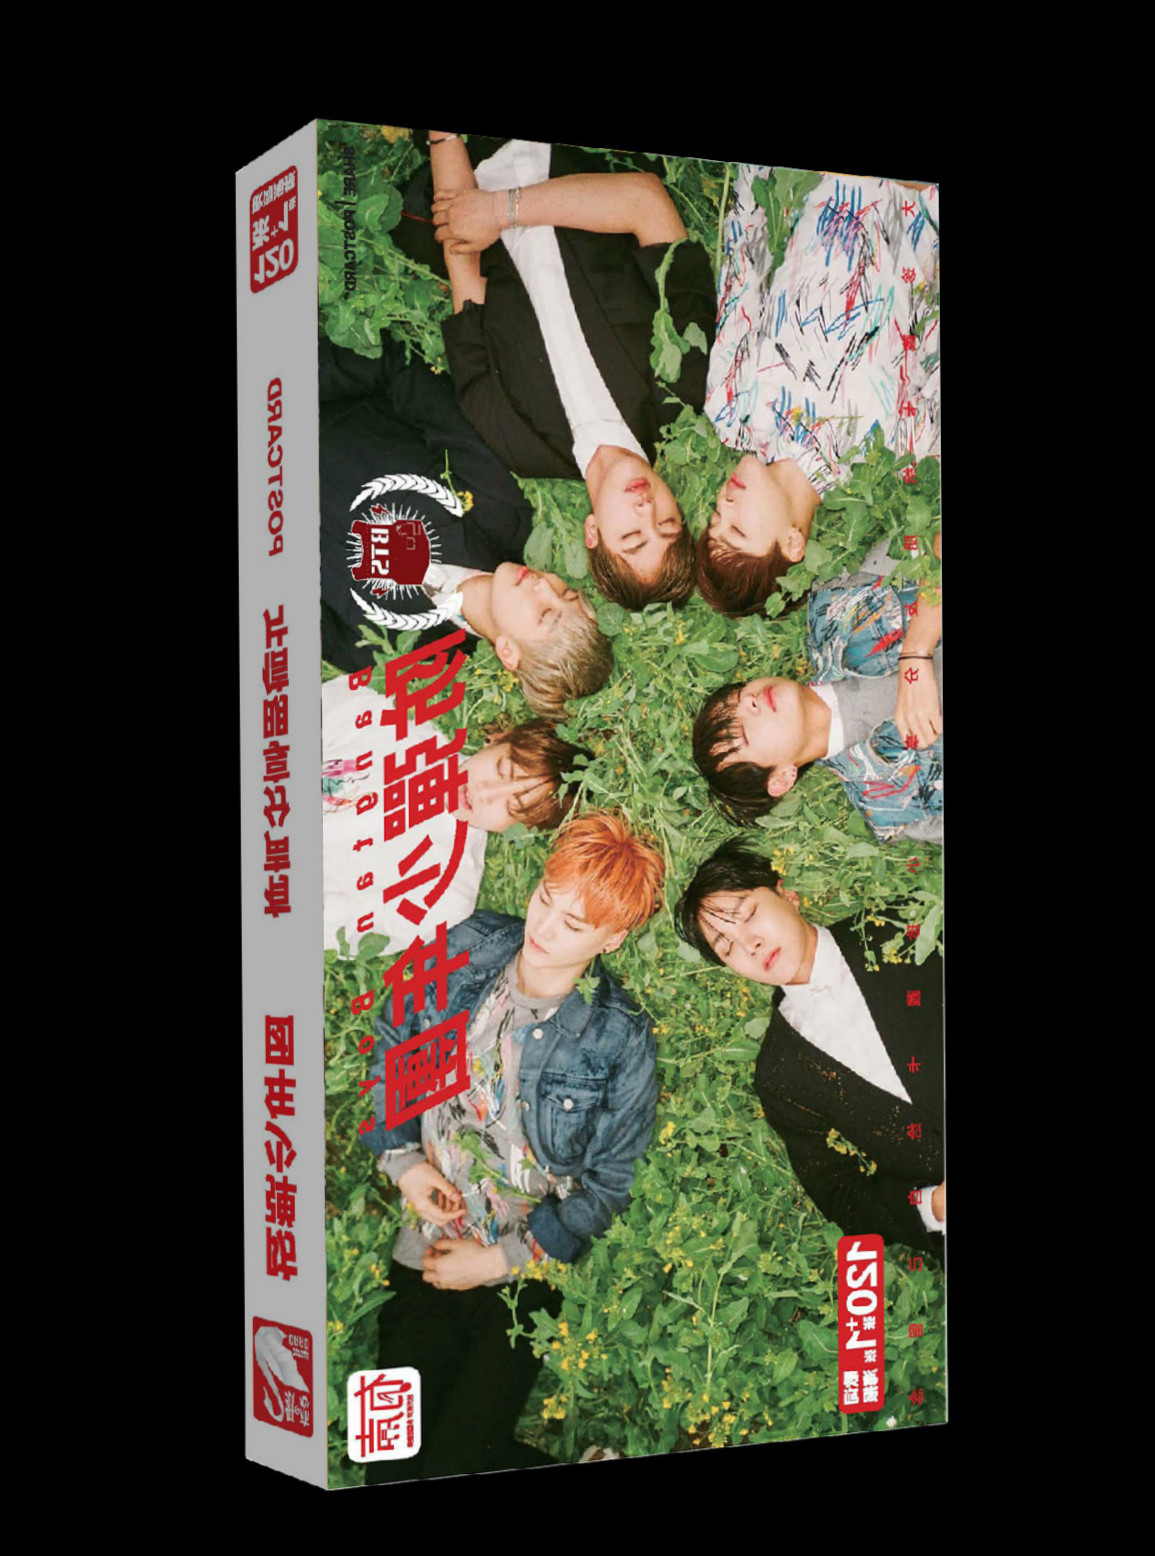 MYKPOP]BTS Bangtan Boys Photo Cards Post Card Poster Fan Gift 120pcs/set SA18041306 postcard christmas post card postcards gift chinese famous cities beautiful landscape greeting cards ansichtkaarten suzhou city